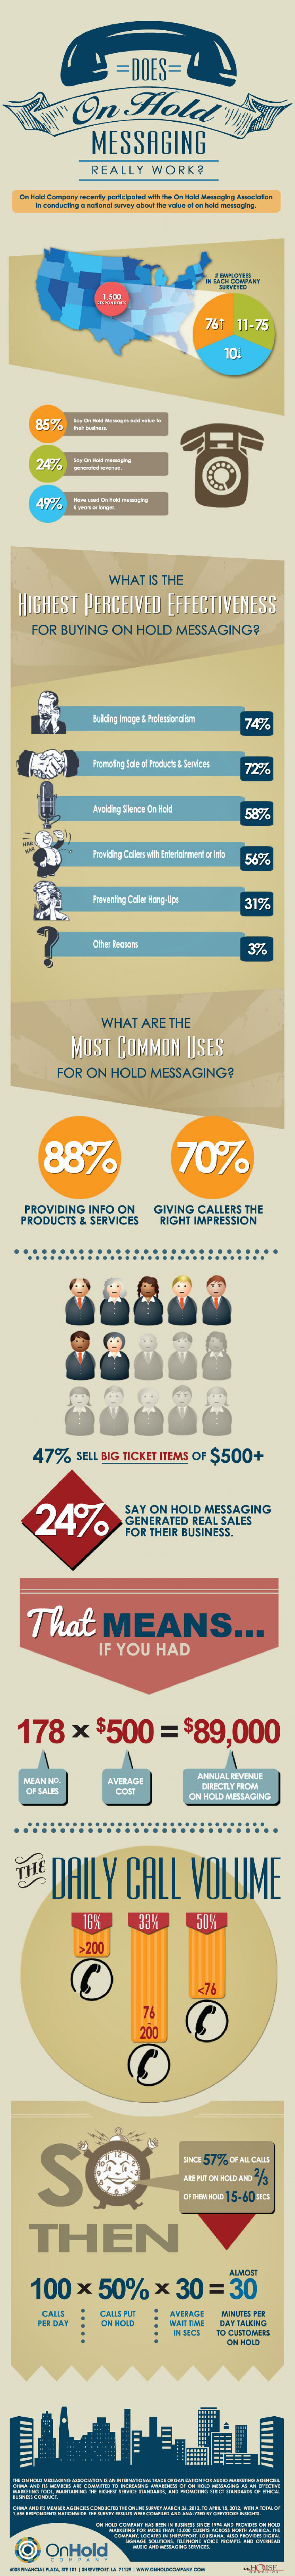 Does On Hold Messaging Really Work? Infographic